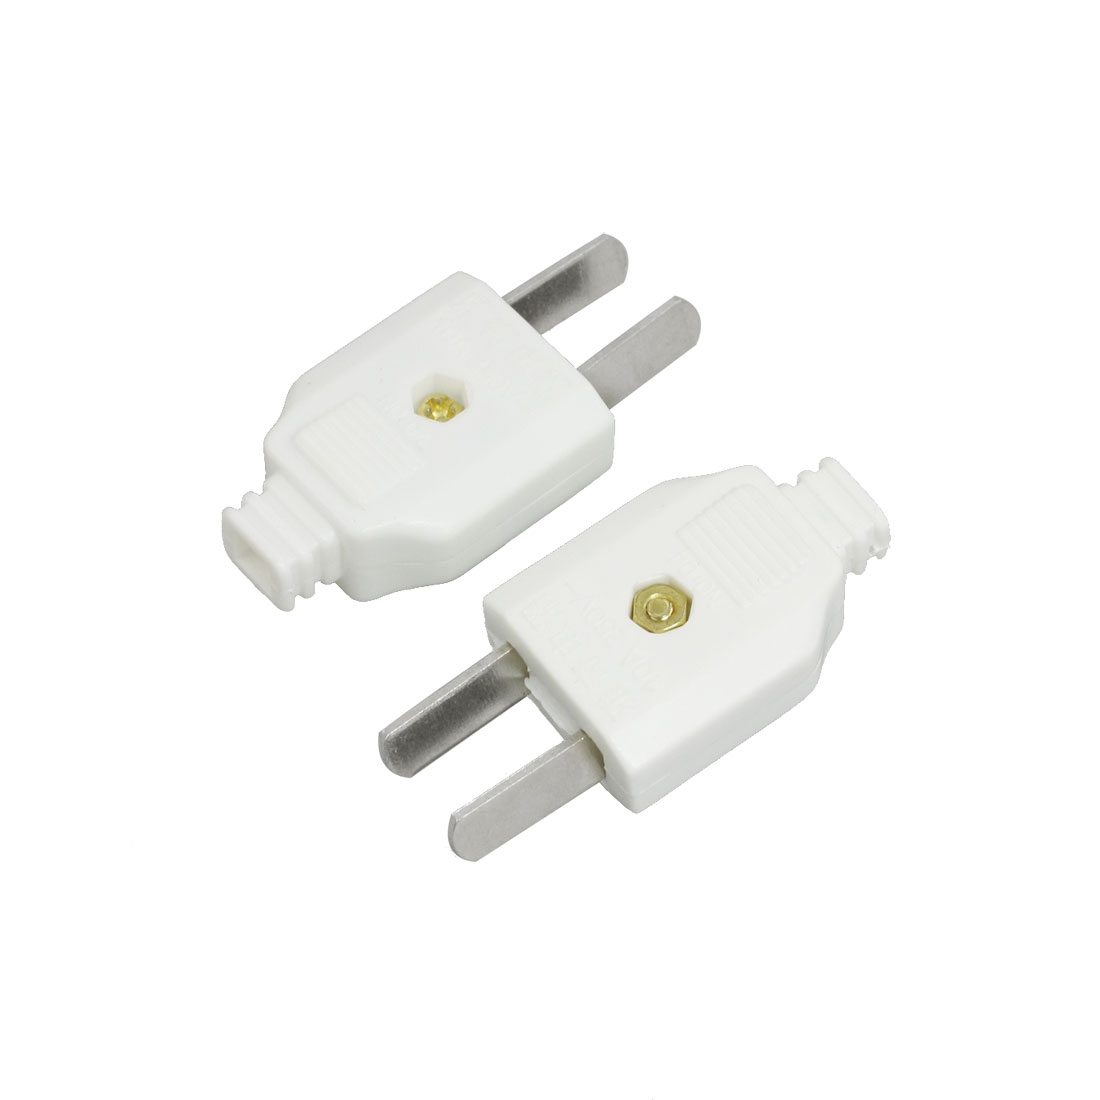 2 Pcs AC 250V 10A Rotation Power Cord 2 Pin Connector US AU Plug White